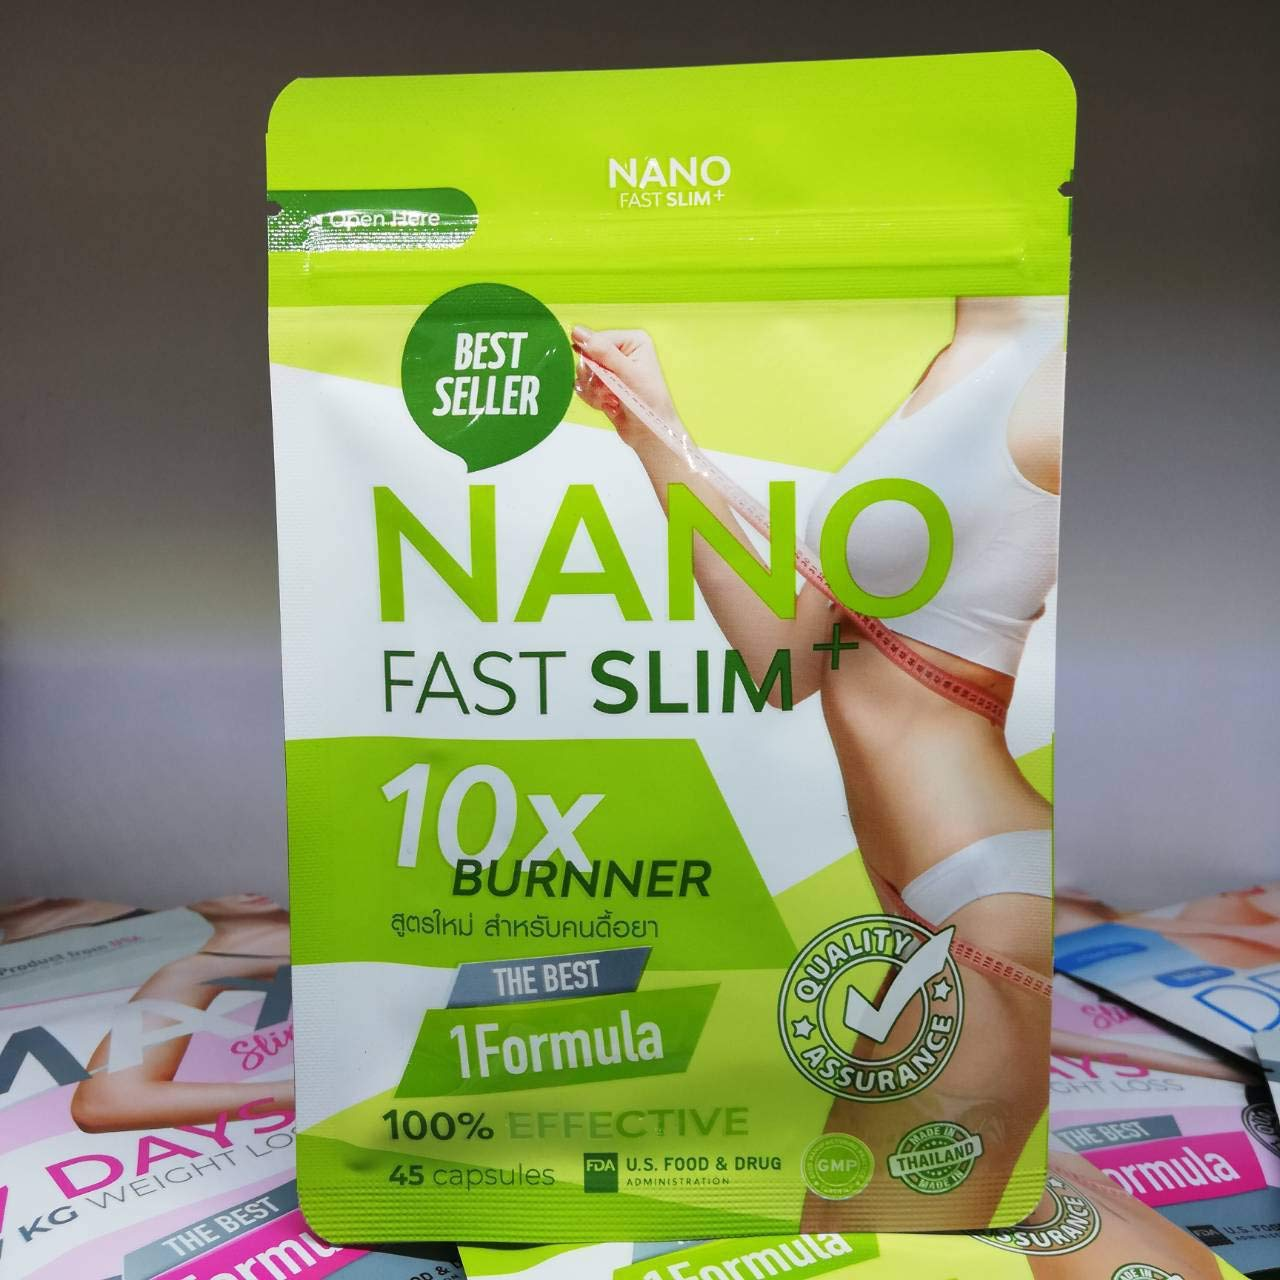 nano fast slim 10x burner ingredients